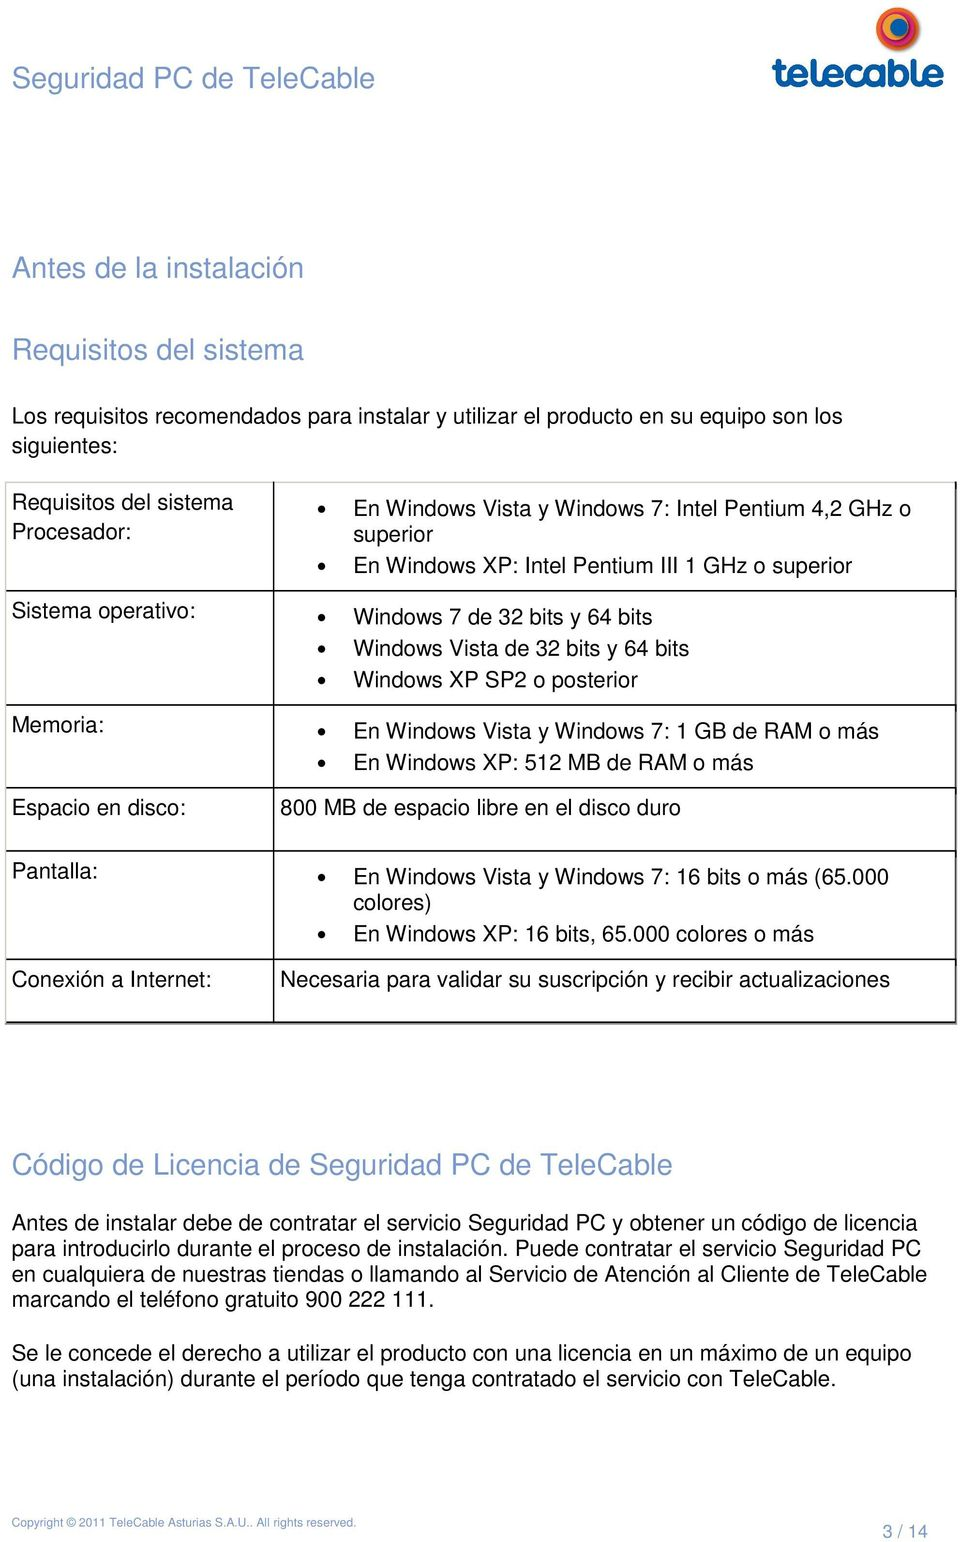 posterior Memoria: En Windows Vista y Windows 7: 1 GB de RAM o más En Windows XP: 512 MB de RAM o más Espacio en disco: 800 MB de espacio libre en el disco duro Pantalla: En Windows Vista y Windows